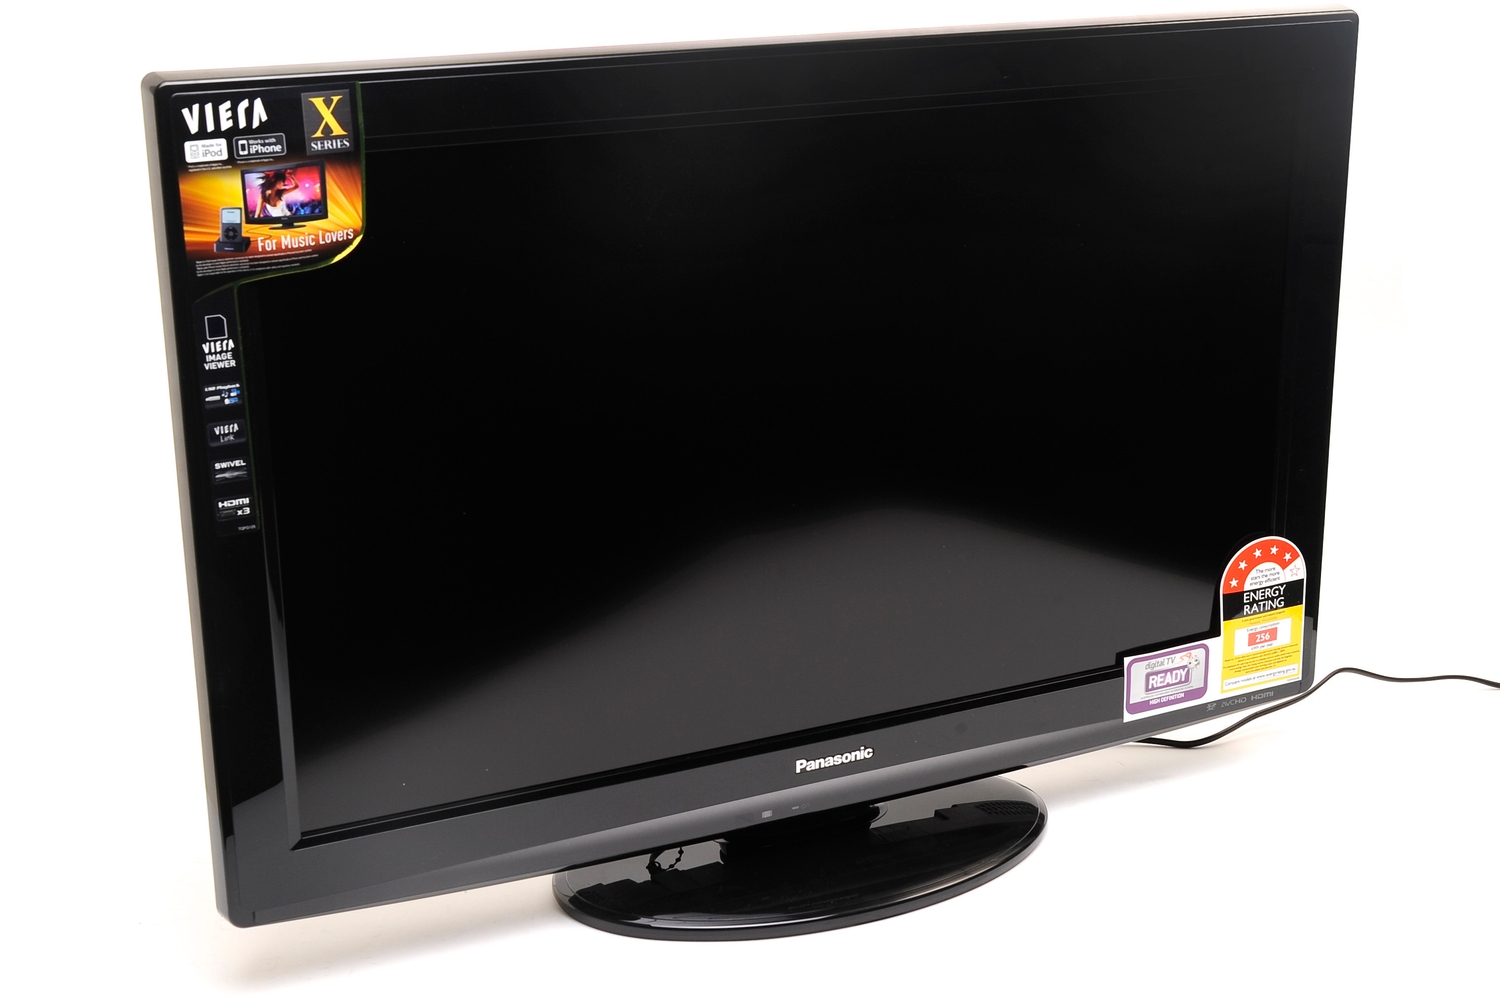 panasonic viera th l32x25a review panasonic 39 s 32in viera lcd tv comes with a dock for your ipod. Black Bedroom Furniture Sets. Home Design Ideas